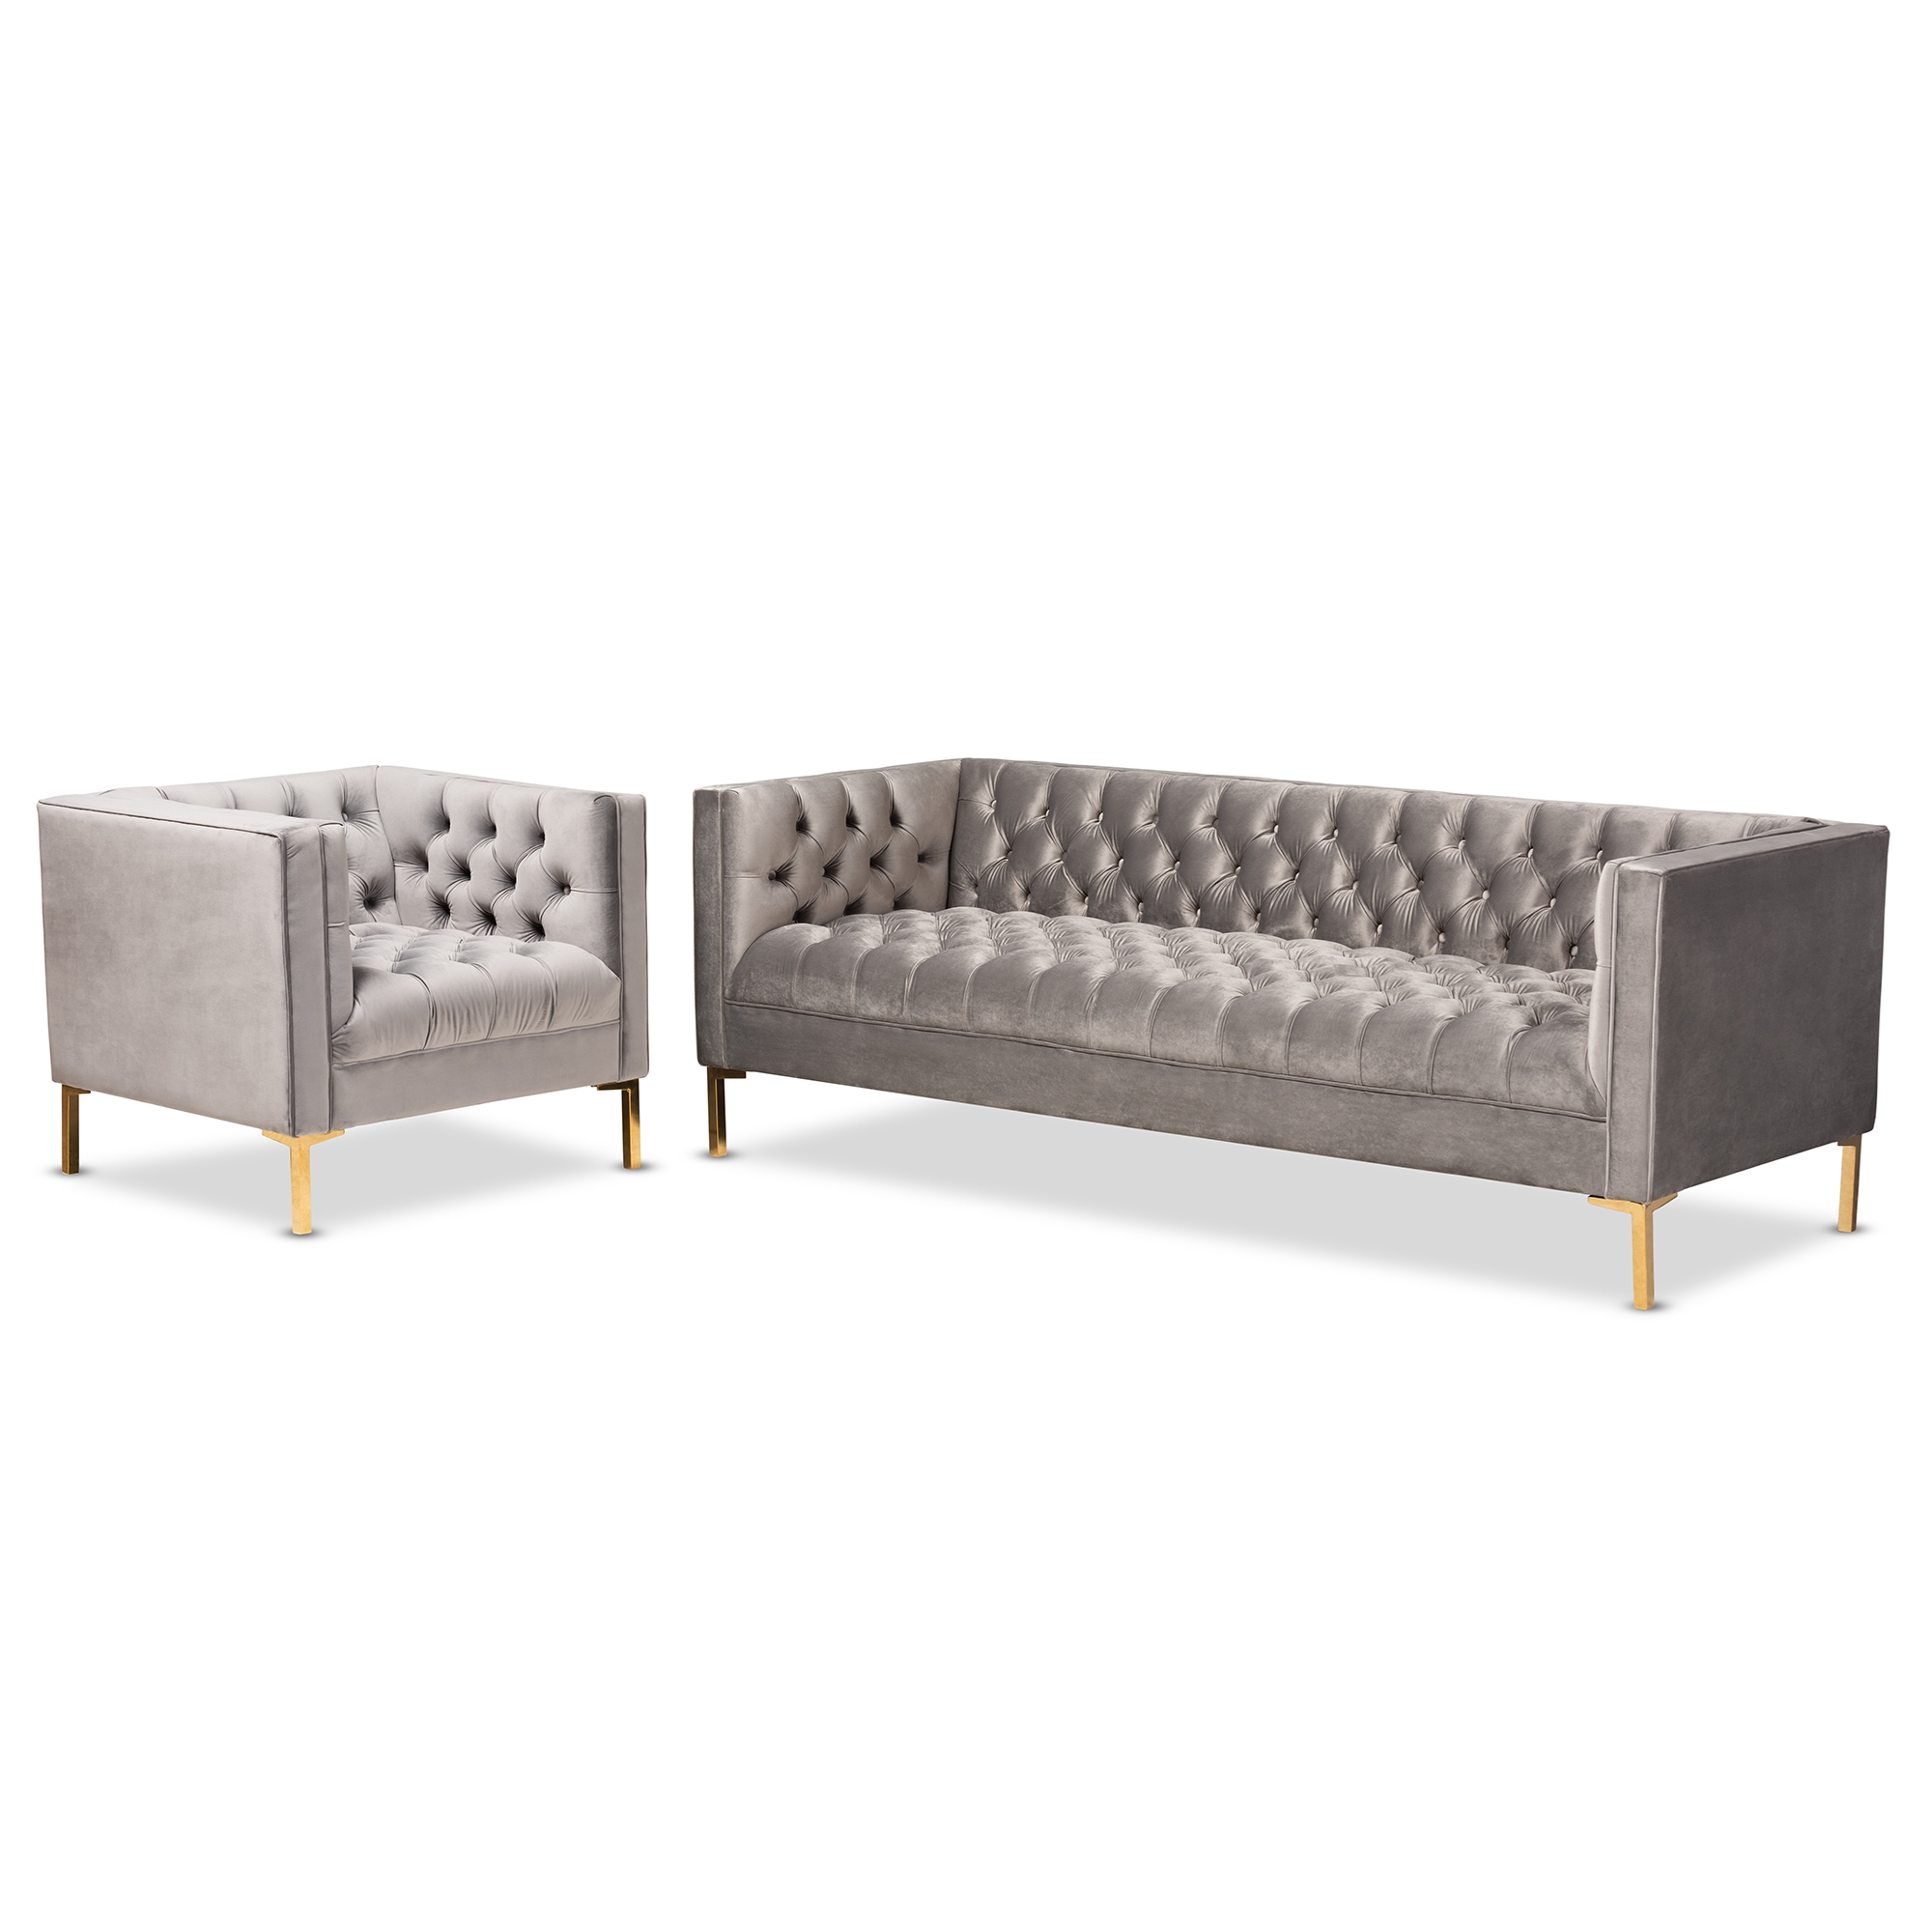 affordable modern living room sets decorating ideas cream couch sofa furniture baxton studio zanetta glam and luxe gray velvet upholstered gold finished 2 piece